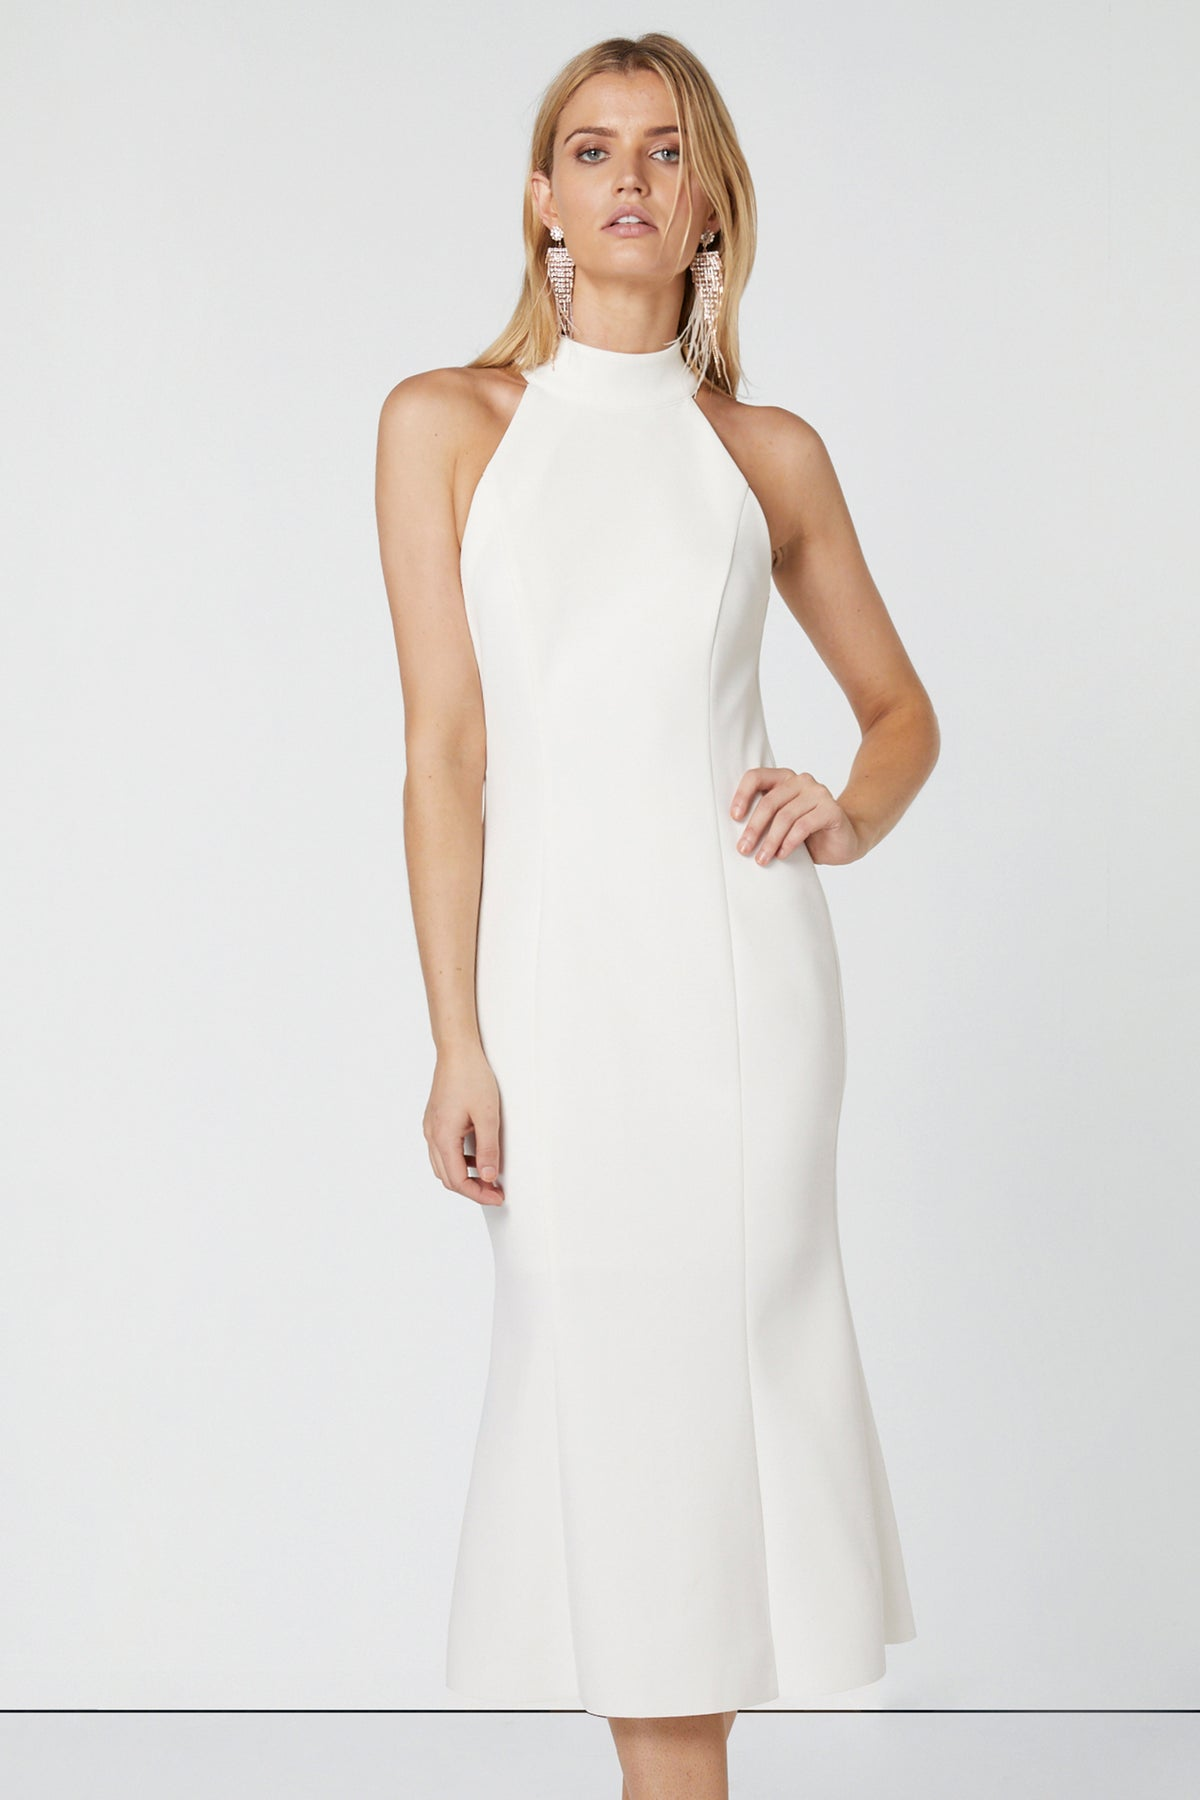 FIANCEE DRESS